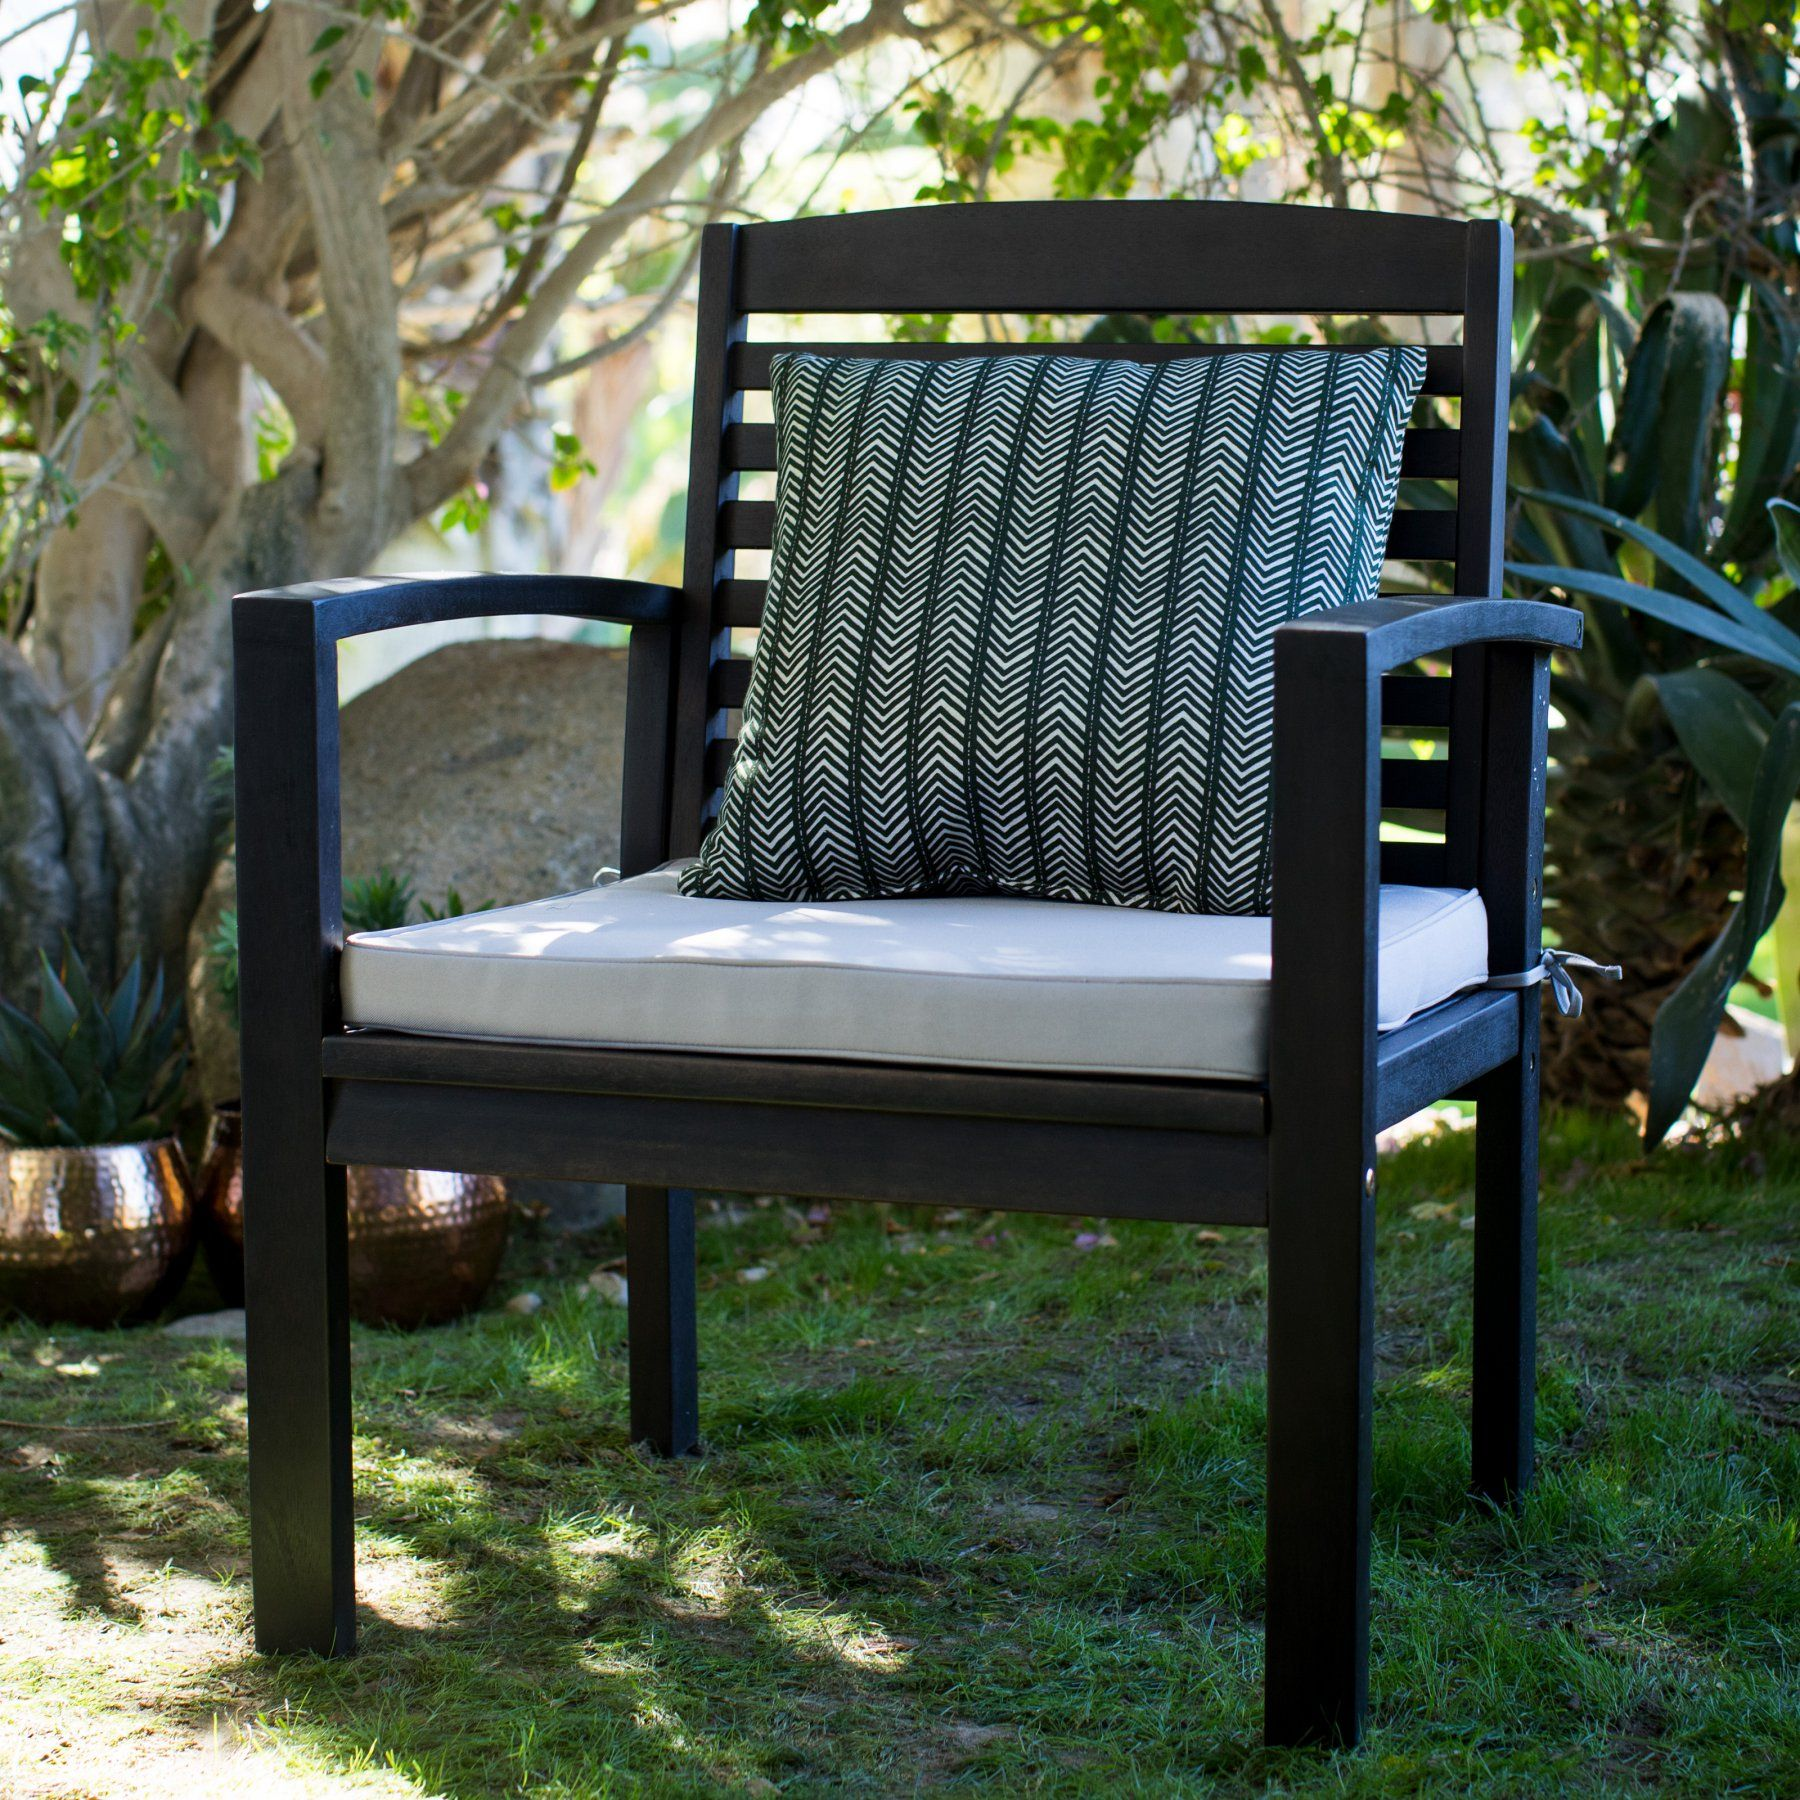 Prime Coral Coast Milany Outdoor Wood Deep Seating Lounge Chair Pdpeps Interior Chair Design Pdpepsorg